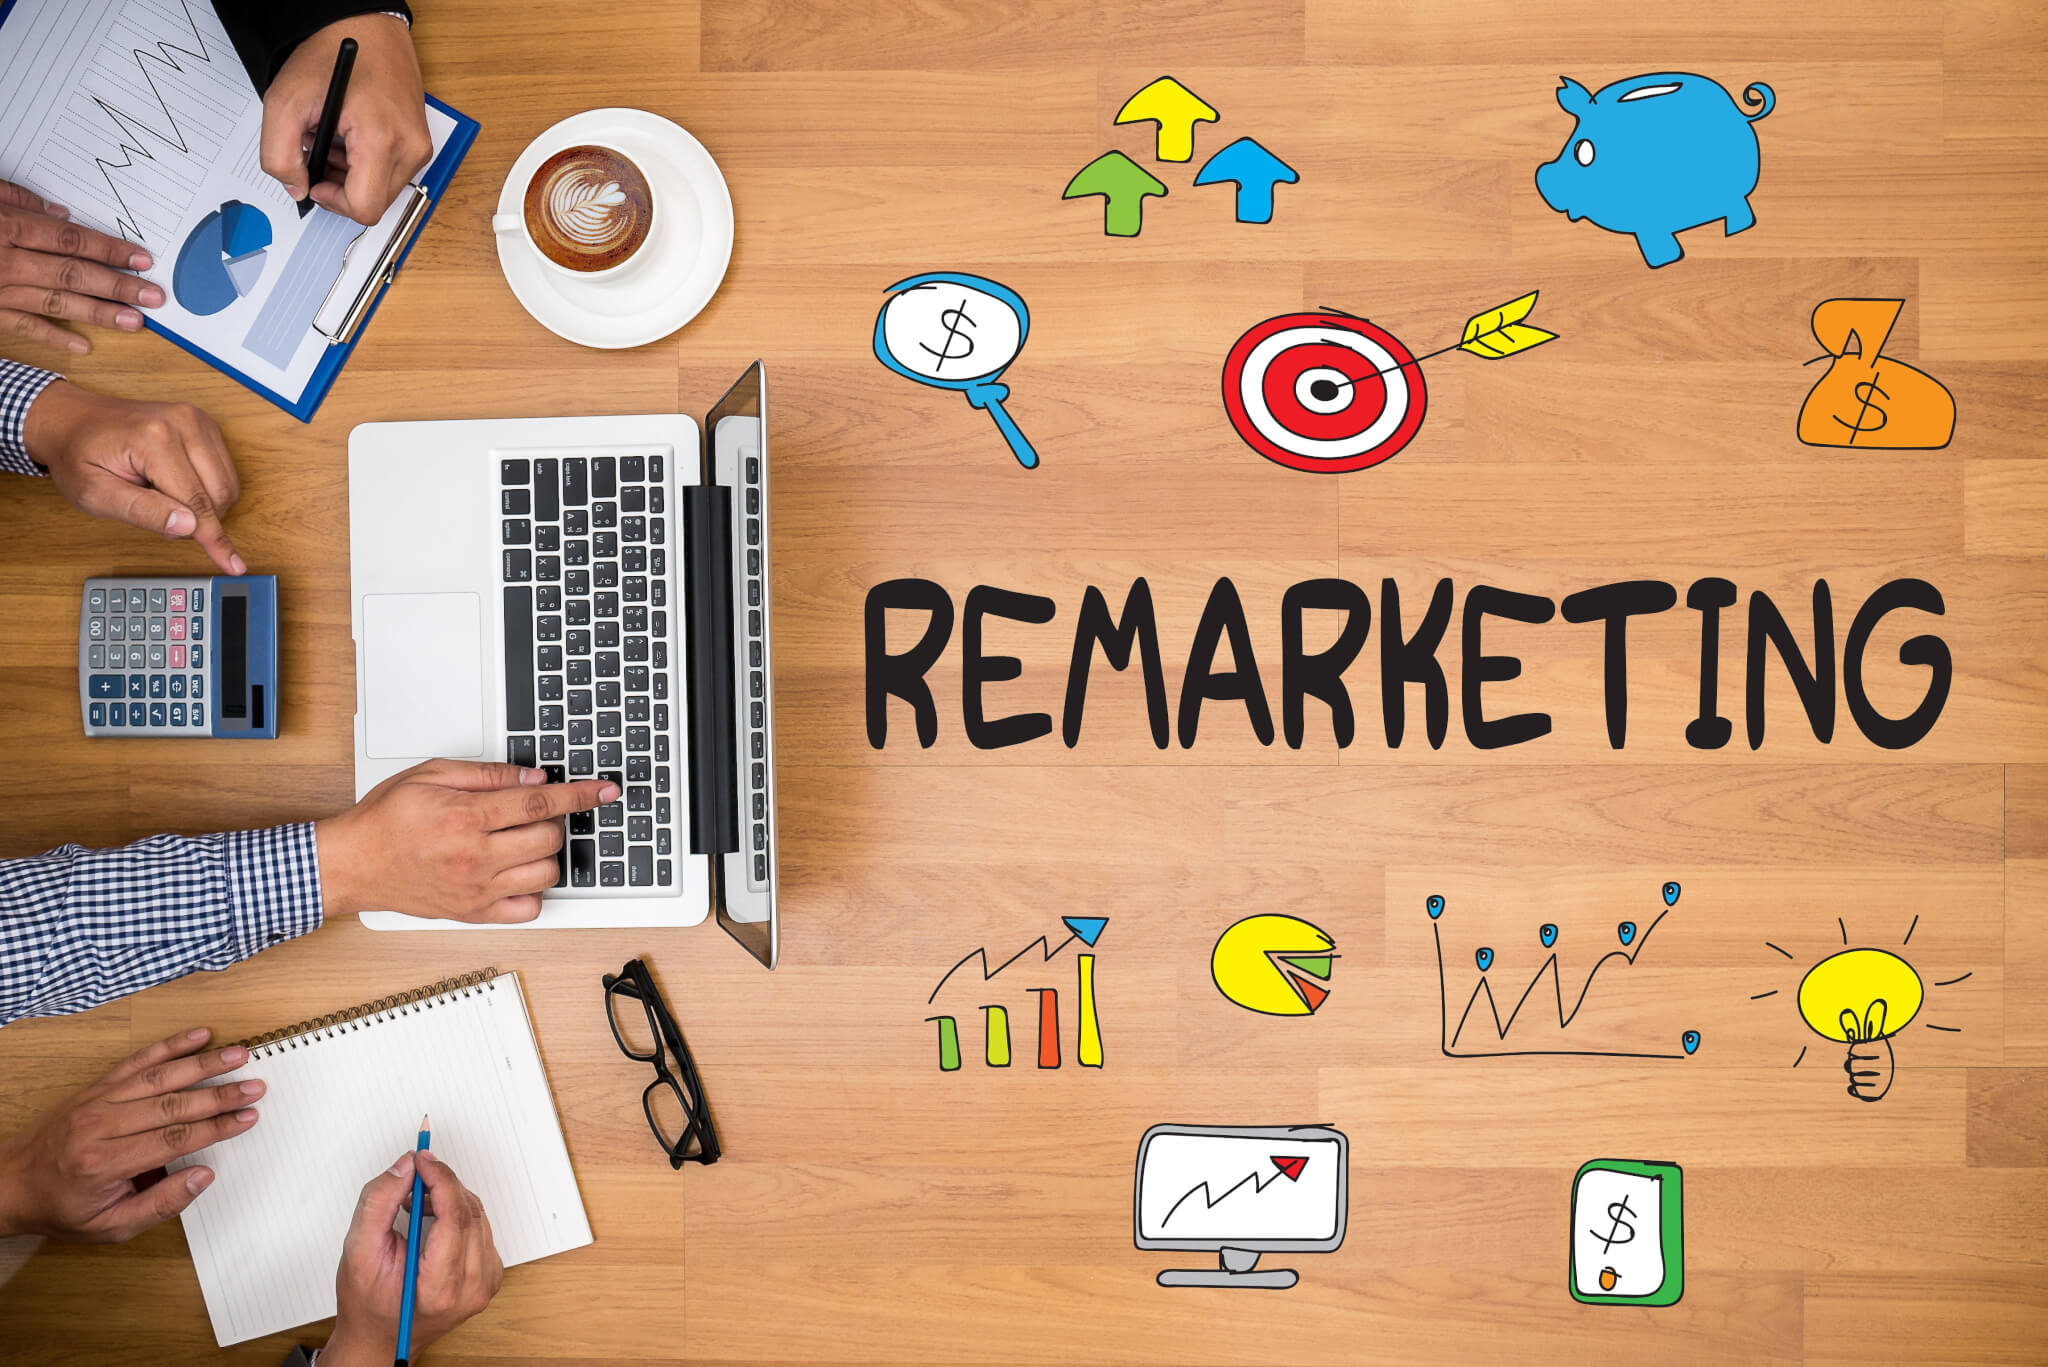 Google remarketing is a form of online advertising that targets consumers based on their previous online actions. This tactic allows you to strategically position your ads in front of those who have previously visited your website.